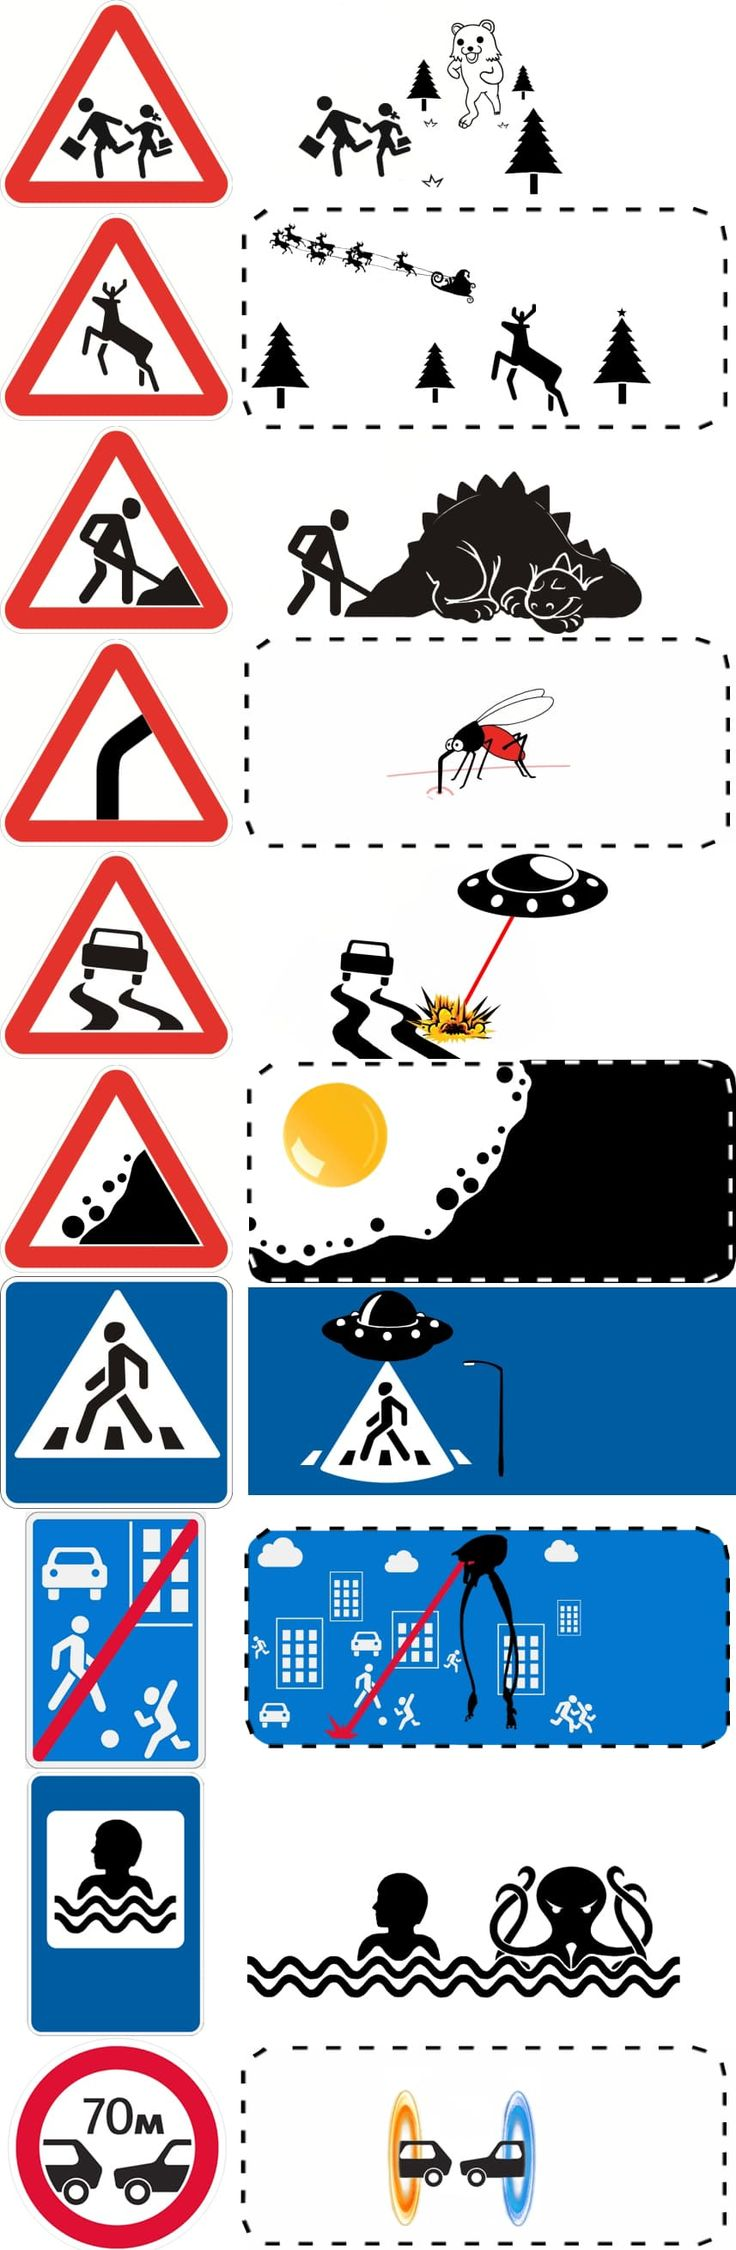 Road Signs Don't Always Mean What You Think